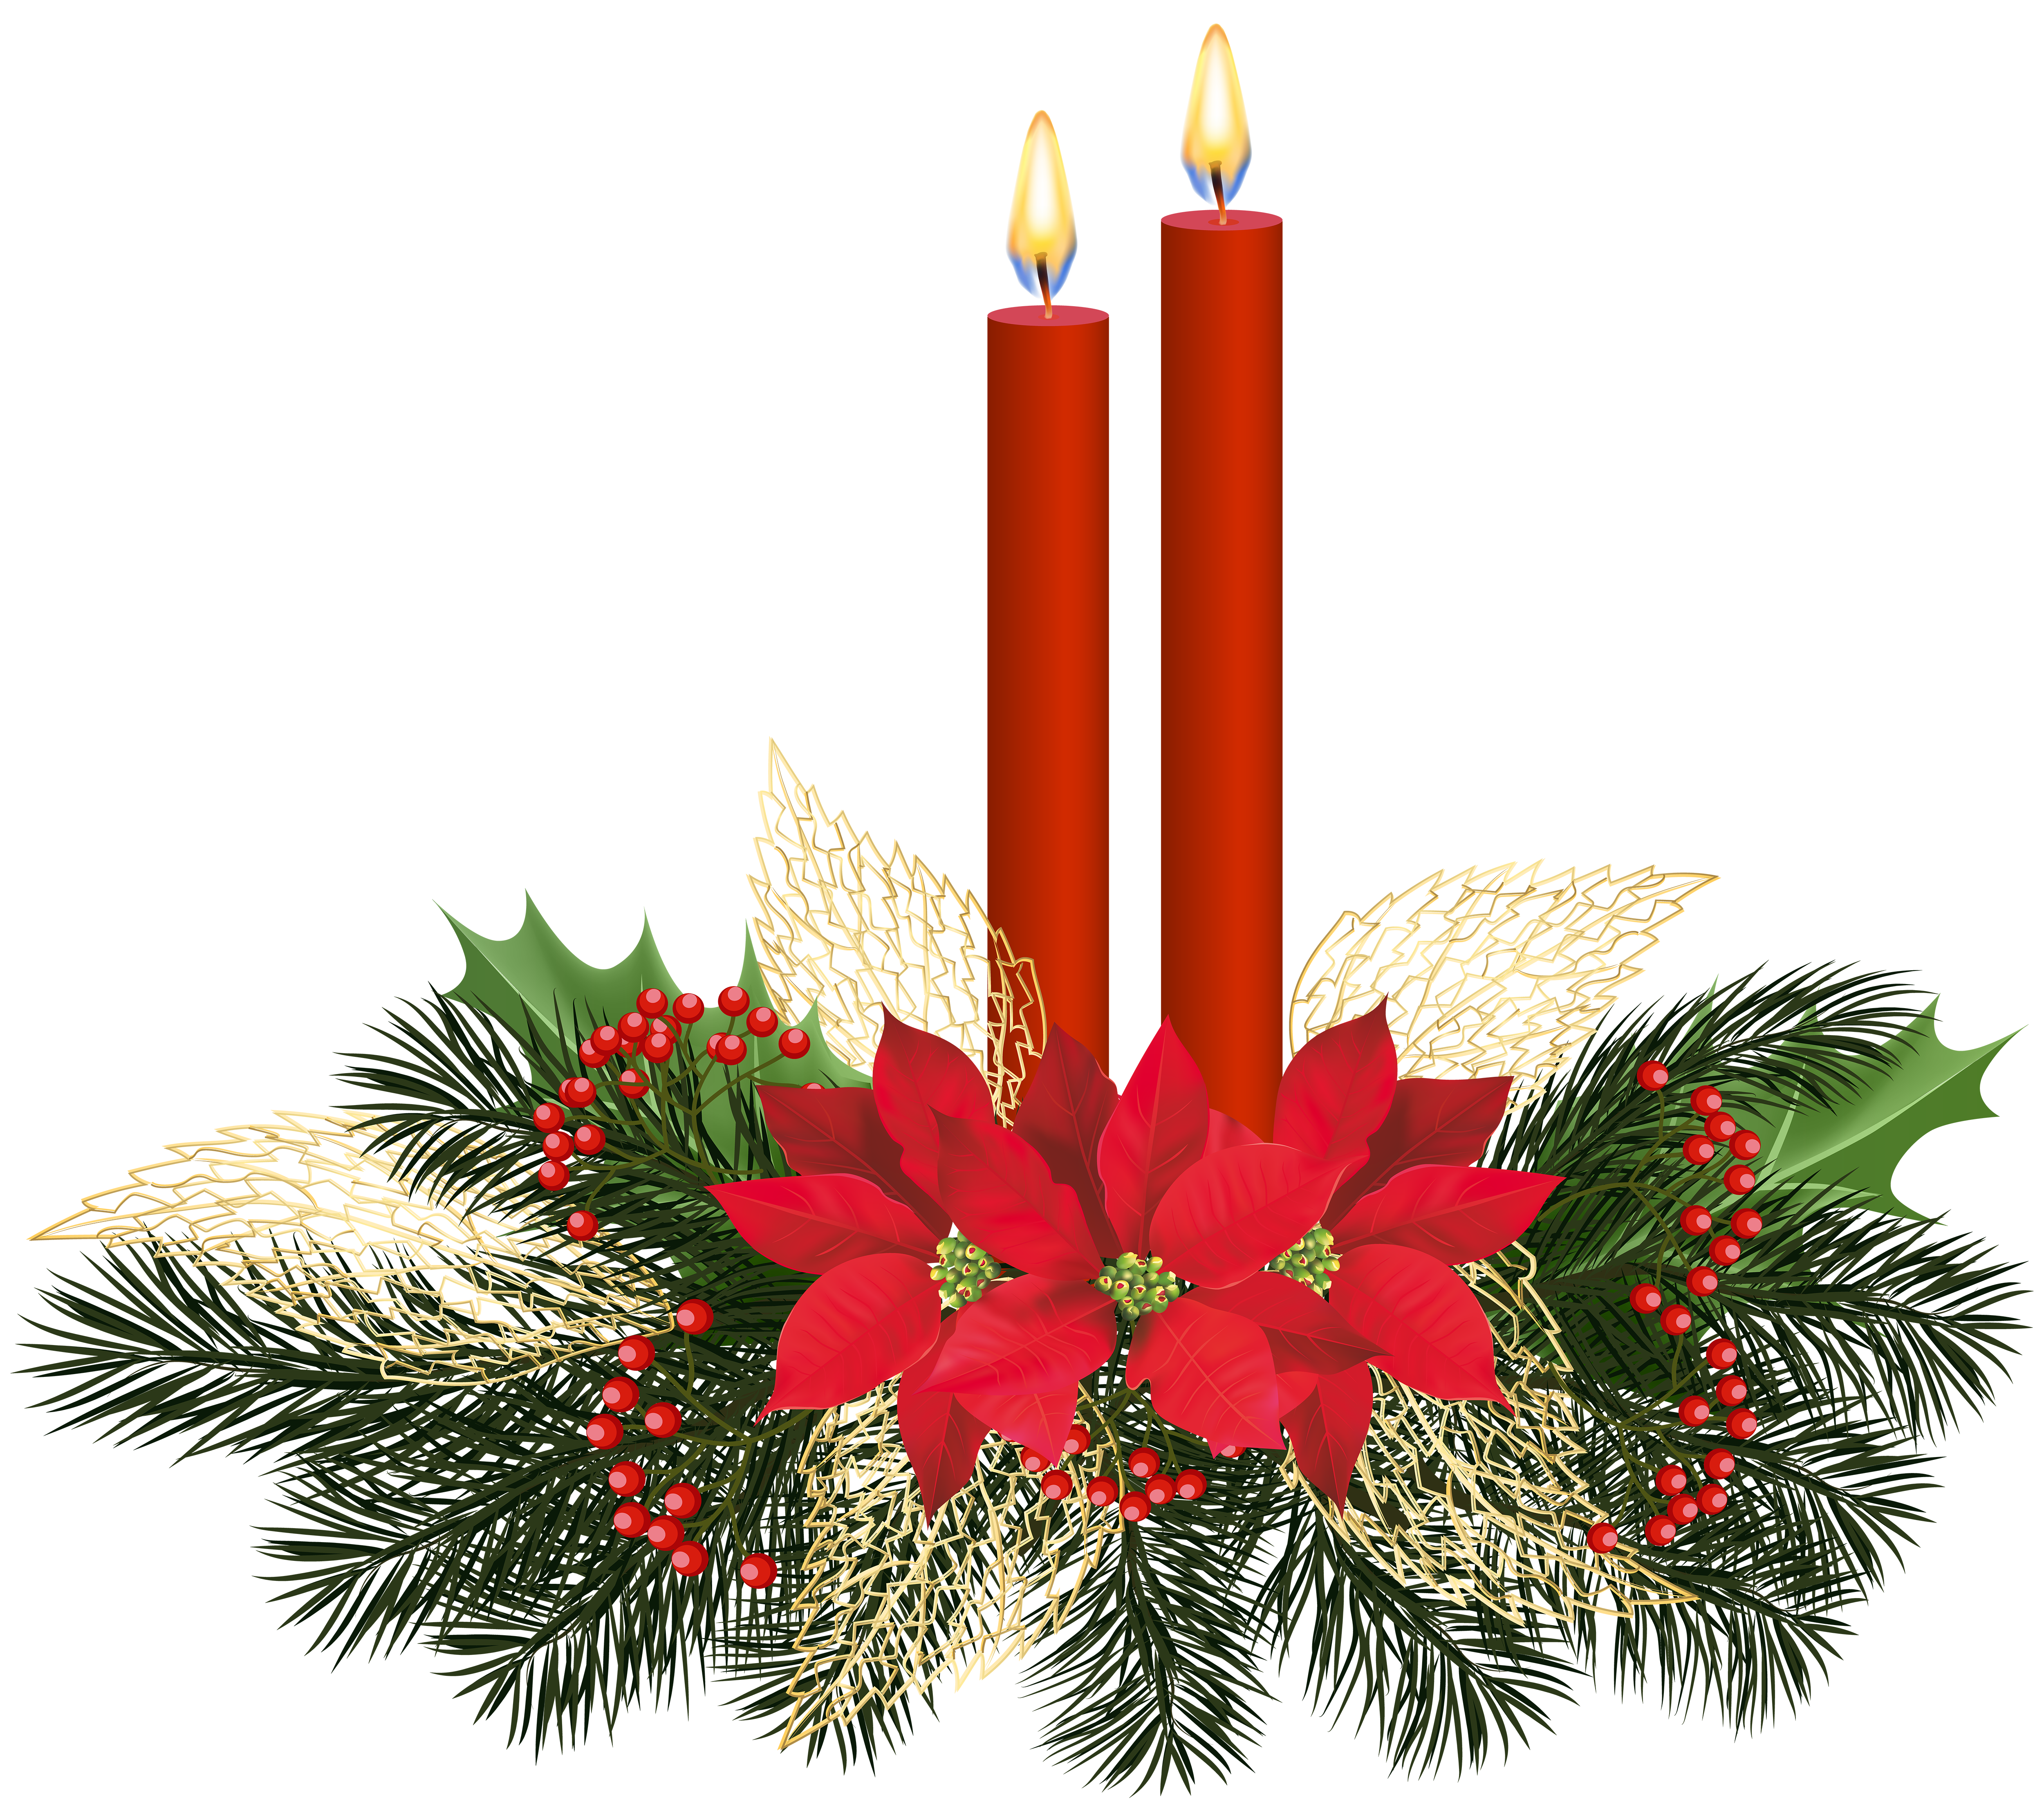 Christmas Candles Png Clip Art Gallery Yopriceville High Quality Images And Transparent Png Free Clipart Christmas Candles Red Christmas Candle Candles